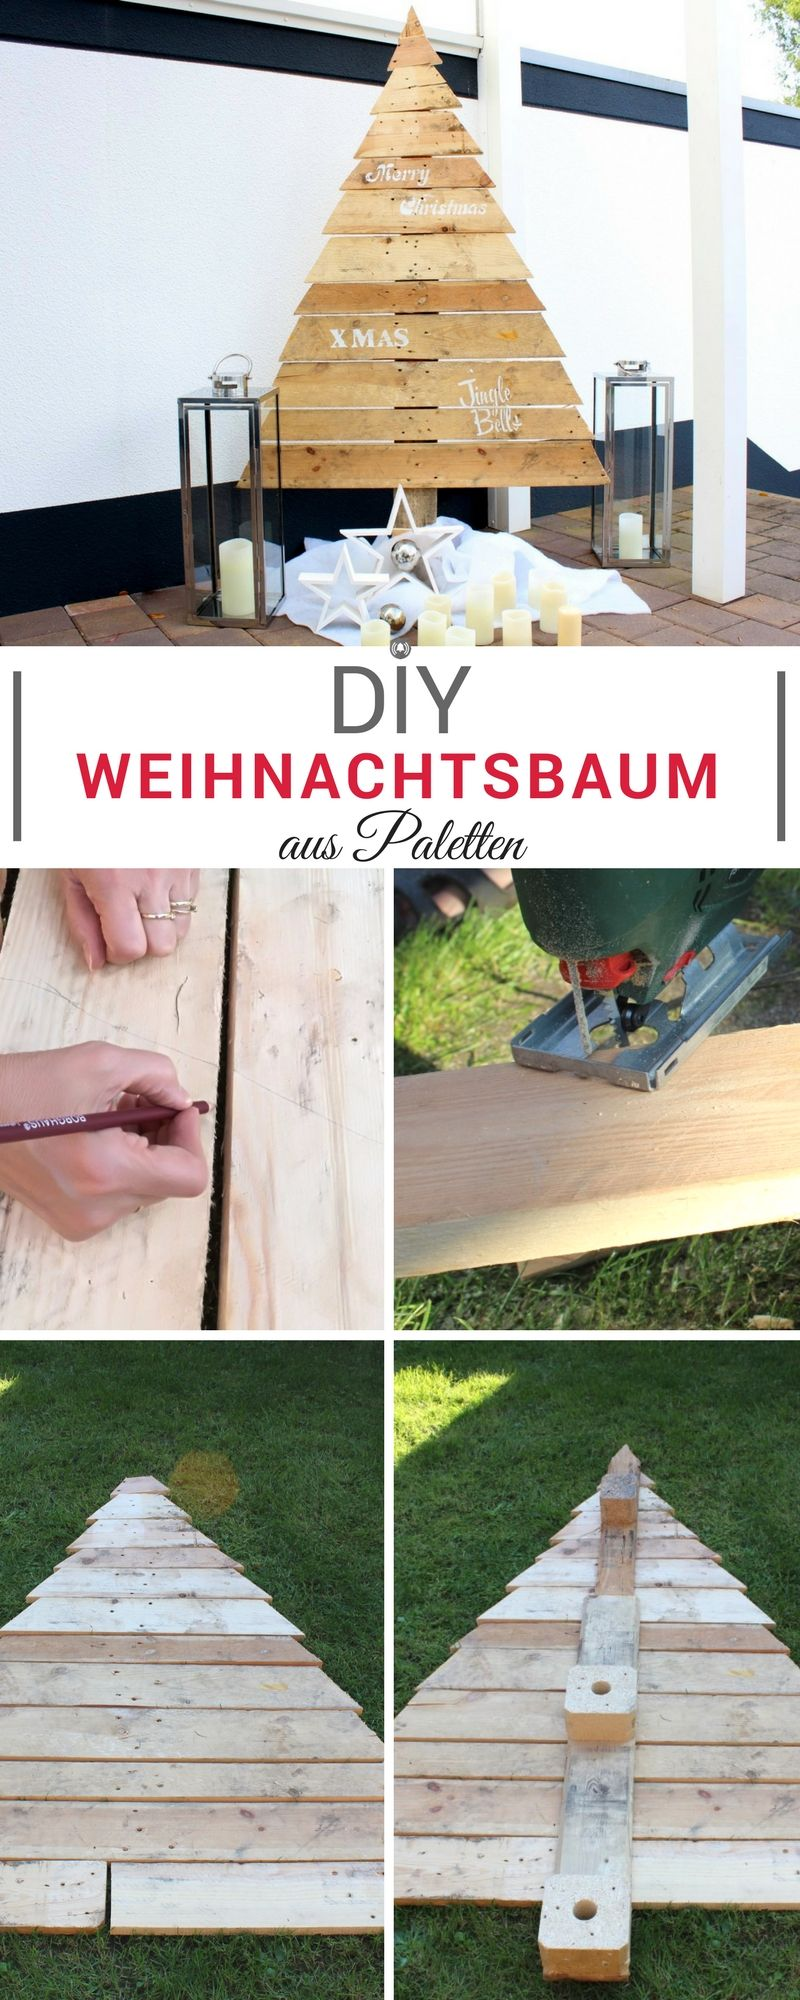 diy cooler weihnachtsbaum aus paletten f r drau en und drinnen christmas idea decoration. Black Bedroom Furniture Sets. Home Design Ideas